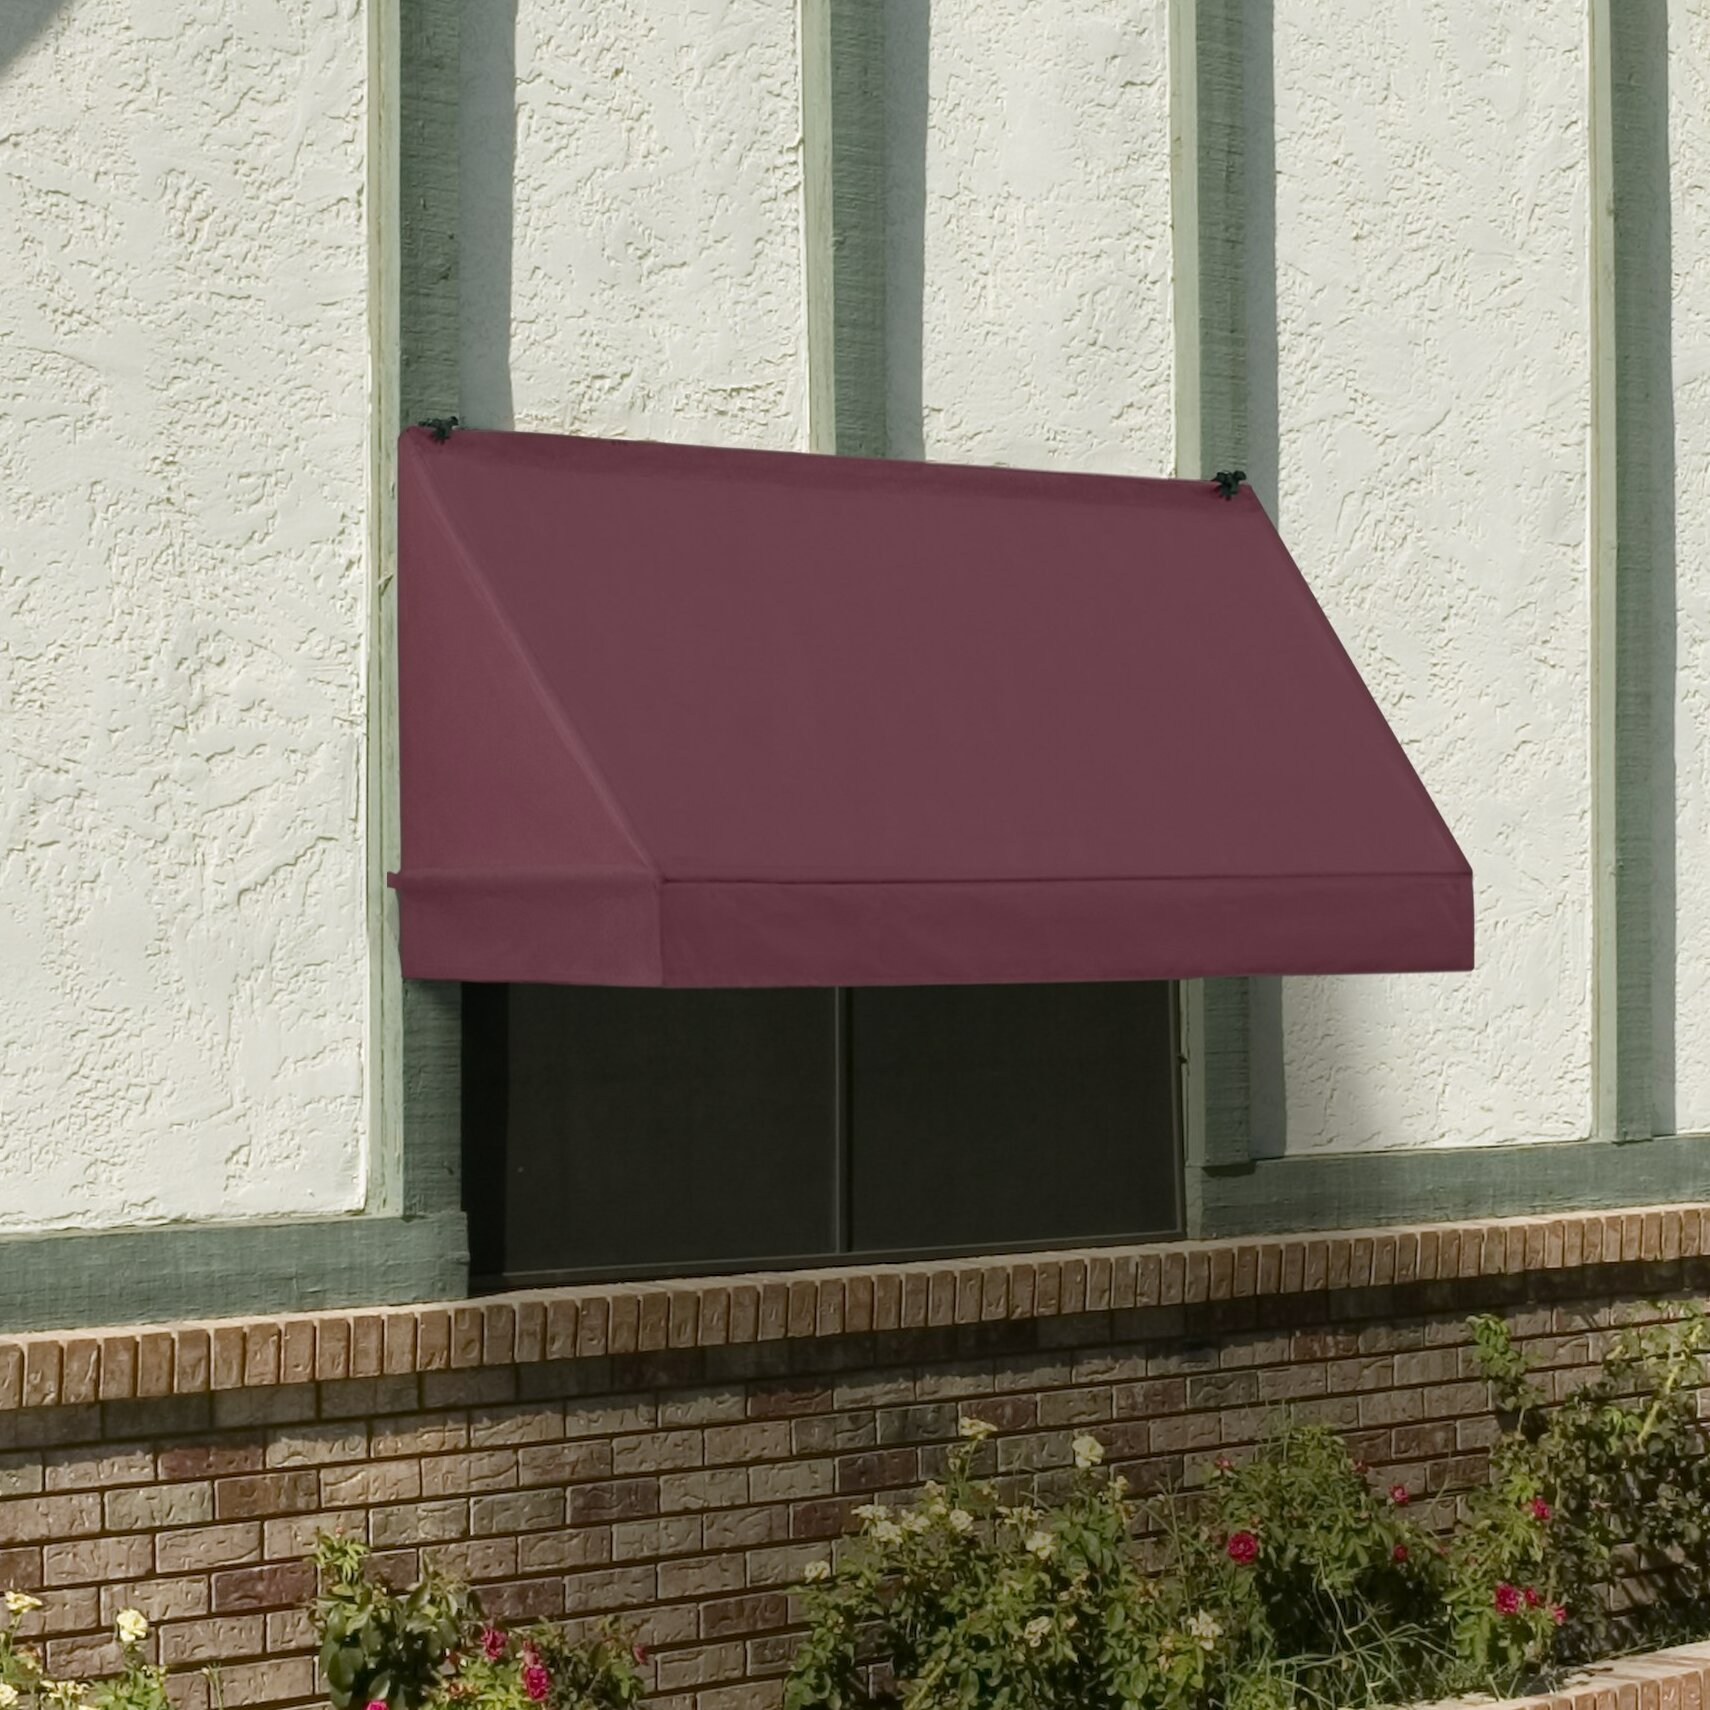 Coolaroo Classic Awning & Reviews | Wayfair